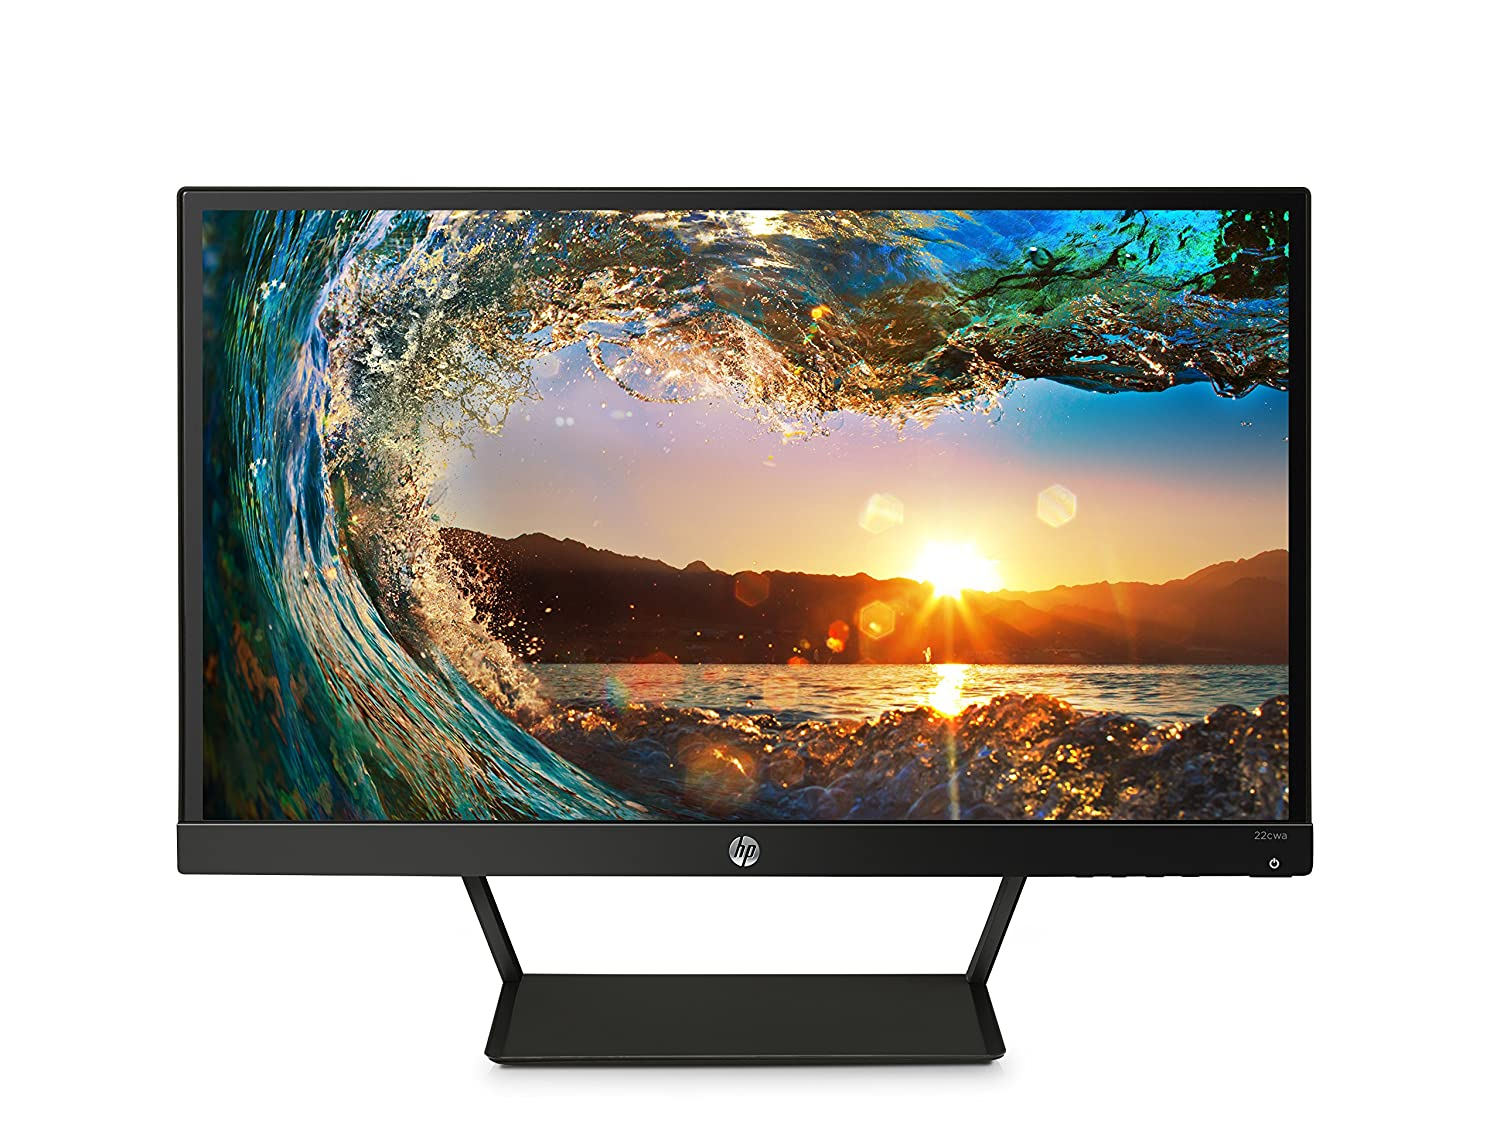 HP Pavilion 21.5-Inch LED Monitor